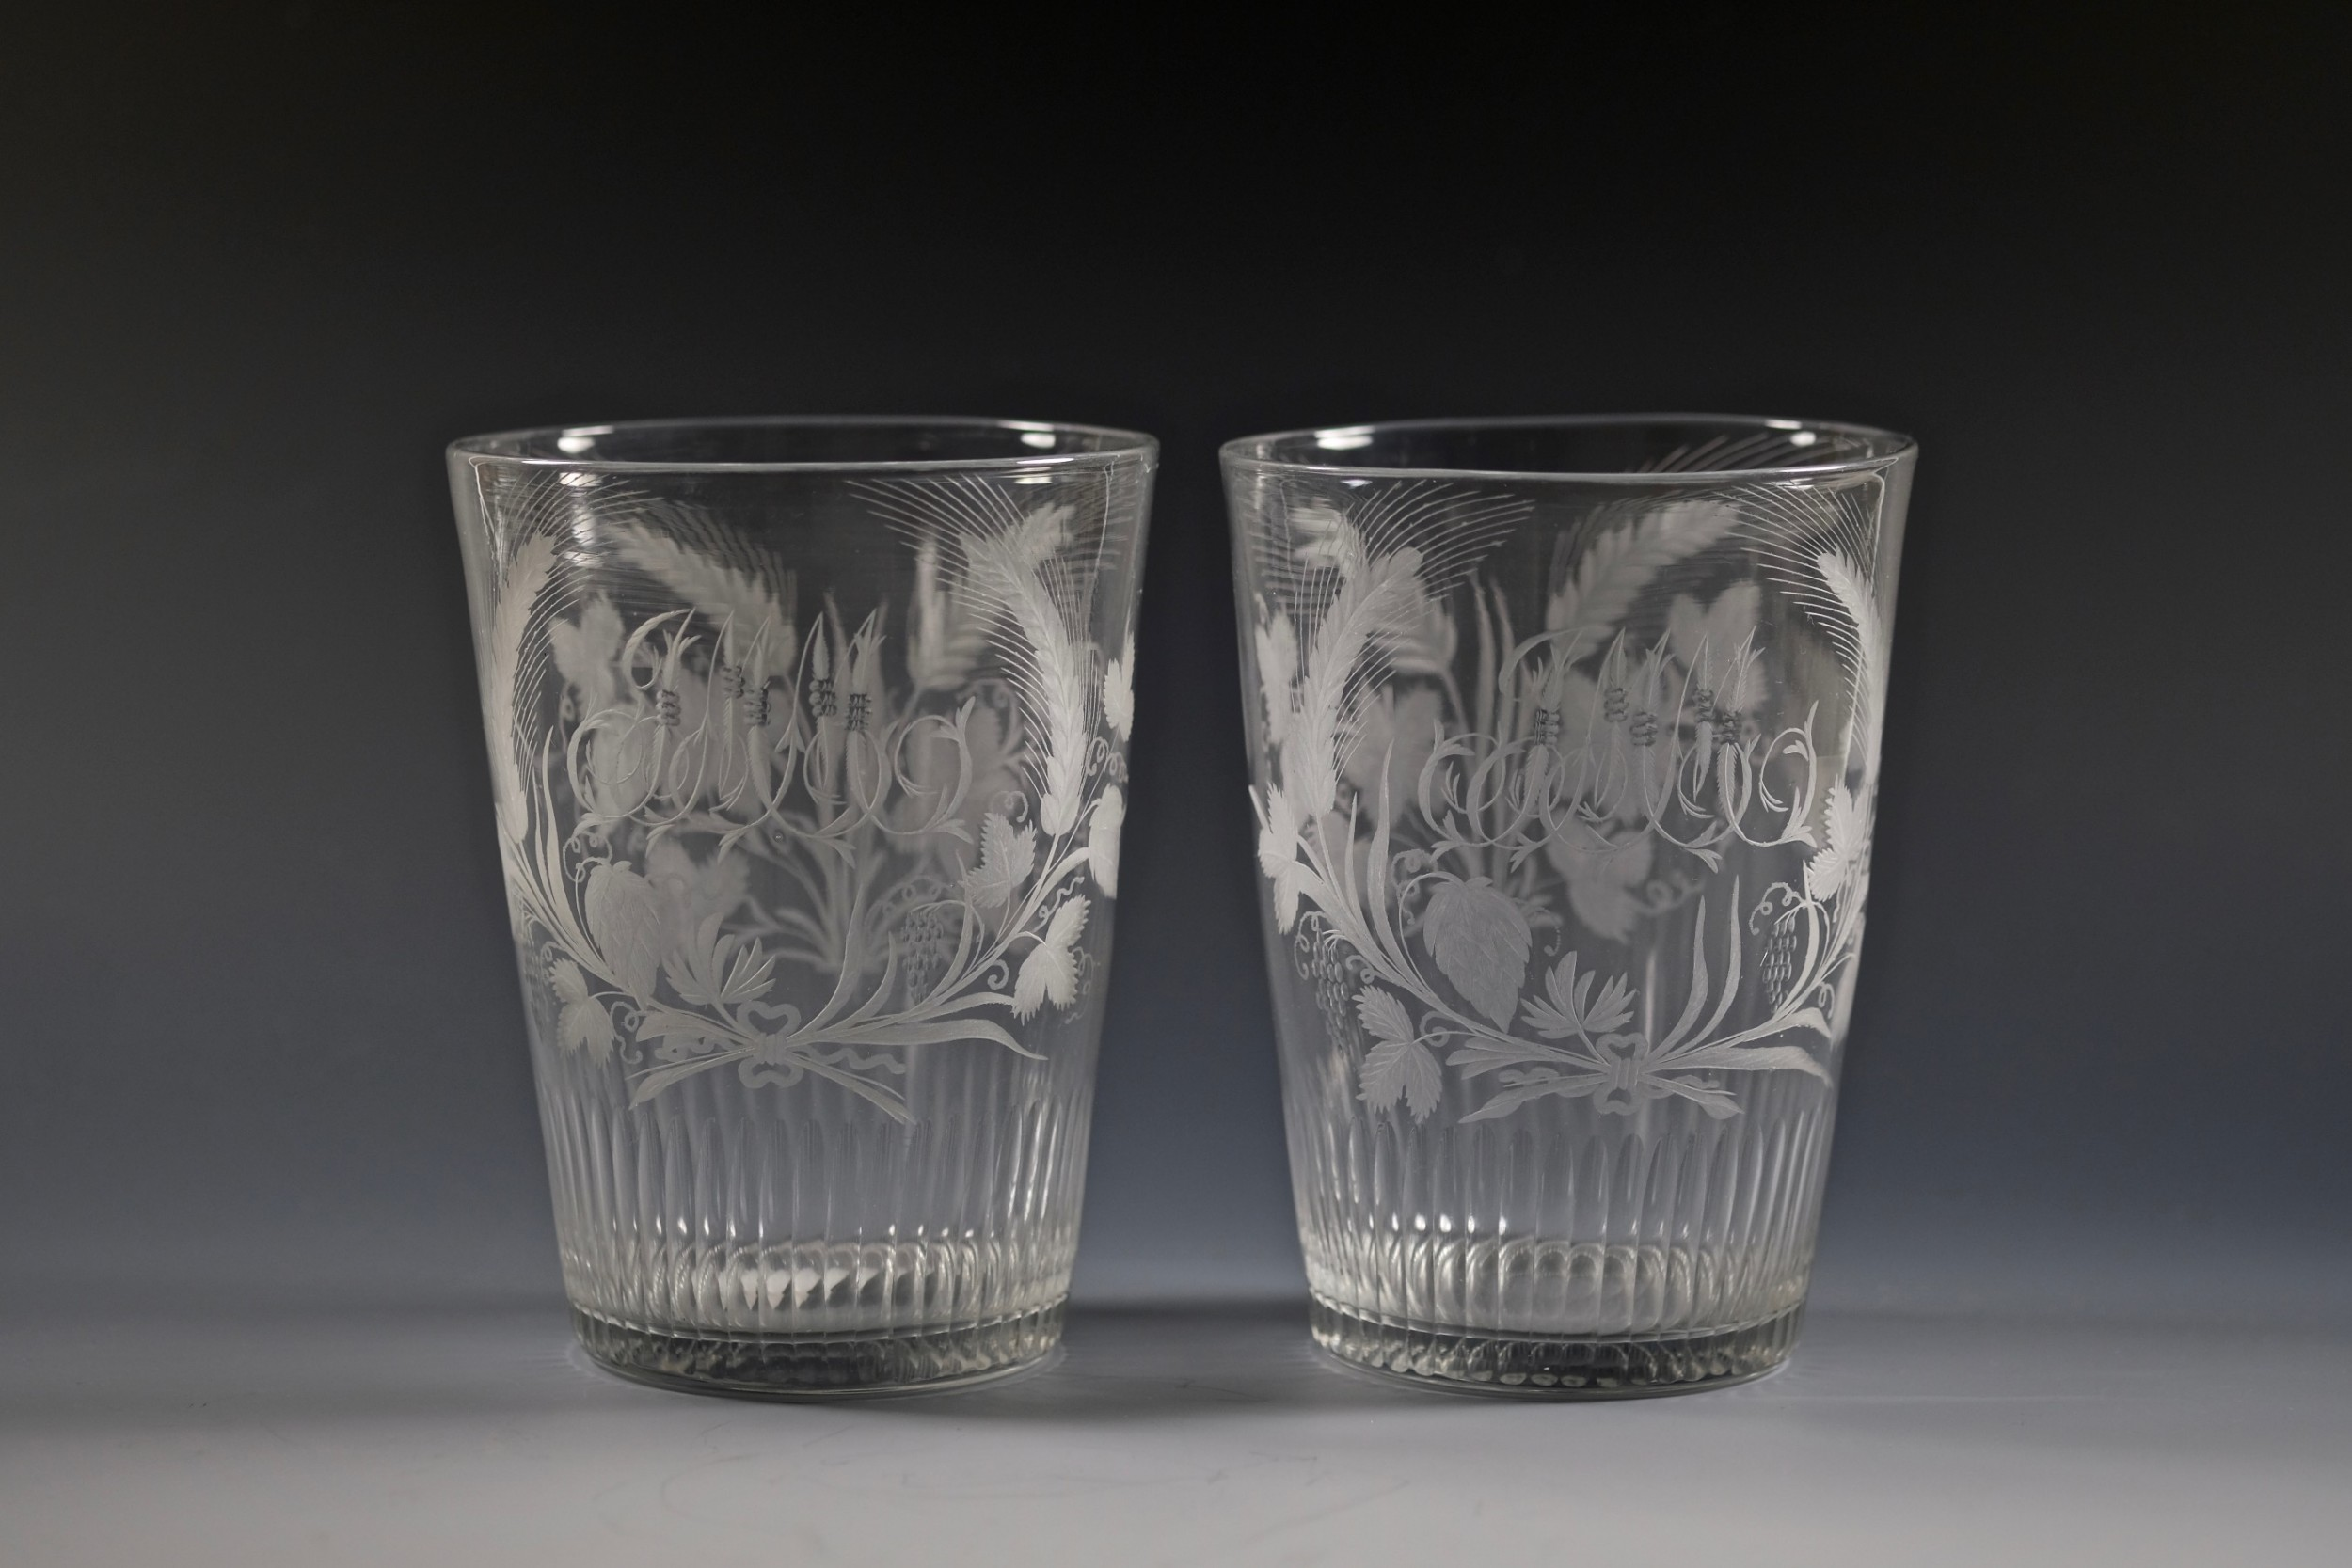 fine pair of large engraved tumblers with basal cut flutes english c1790